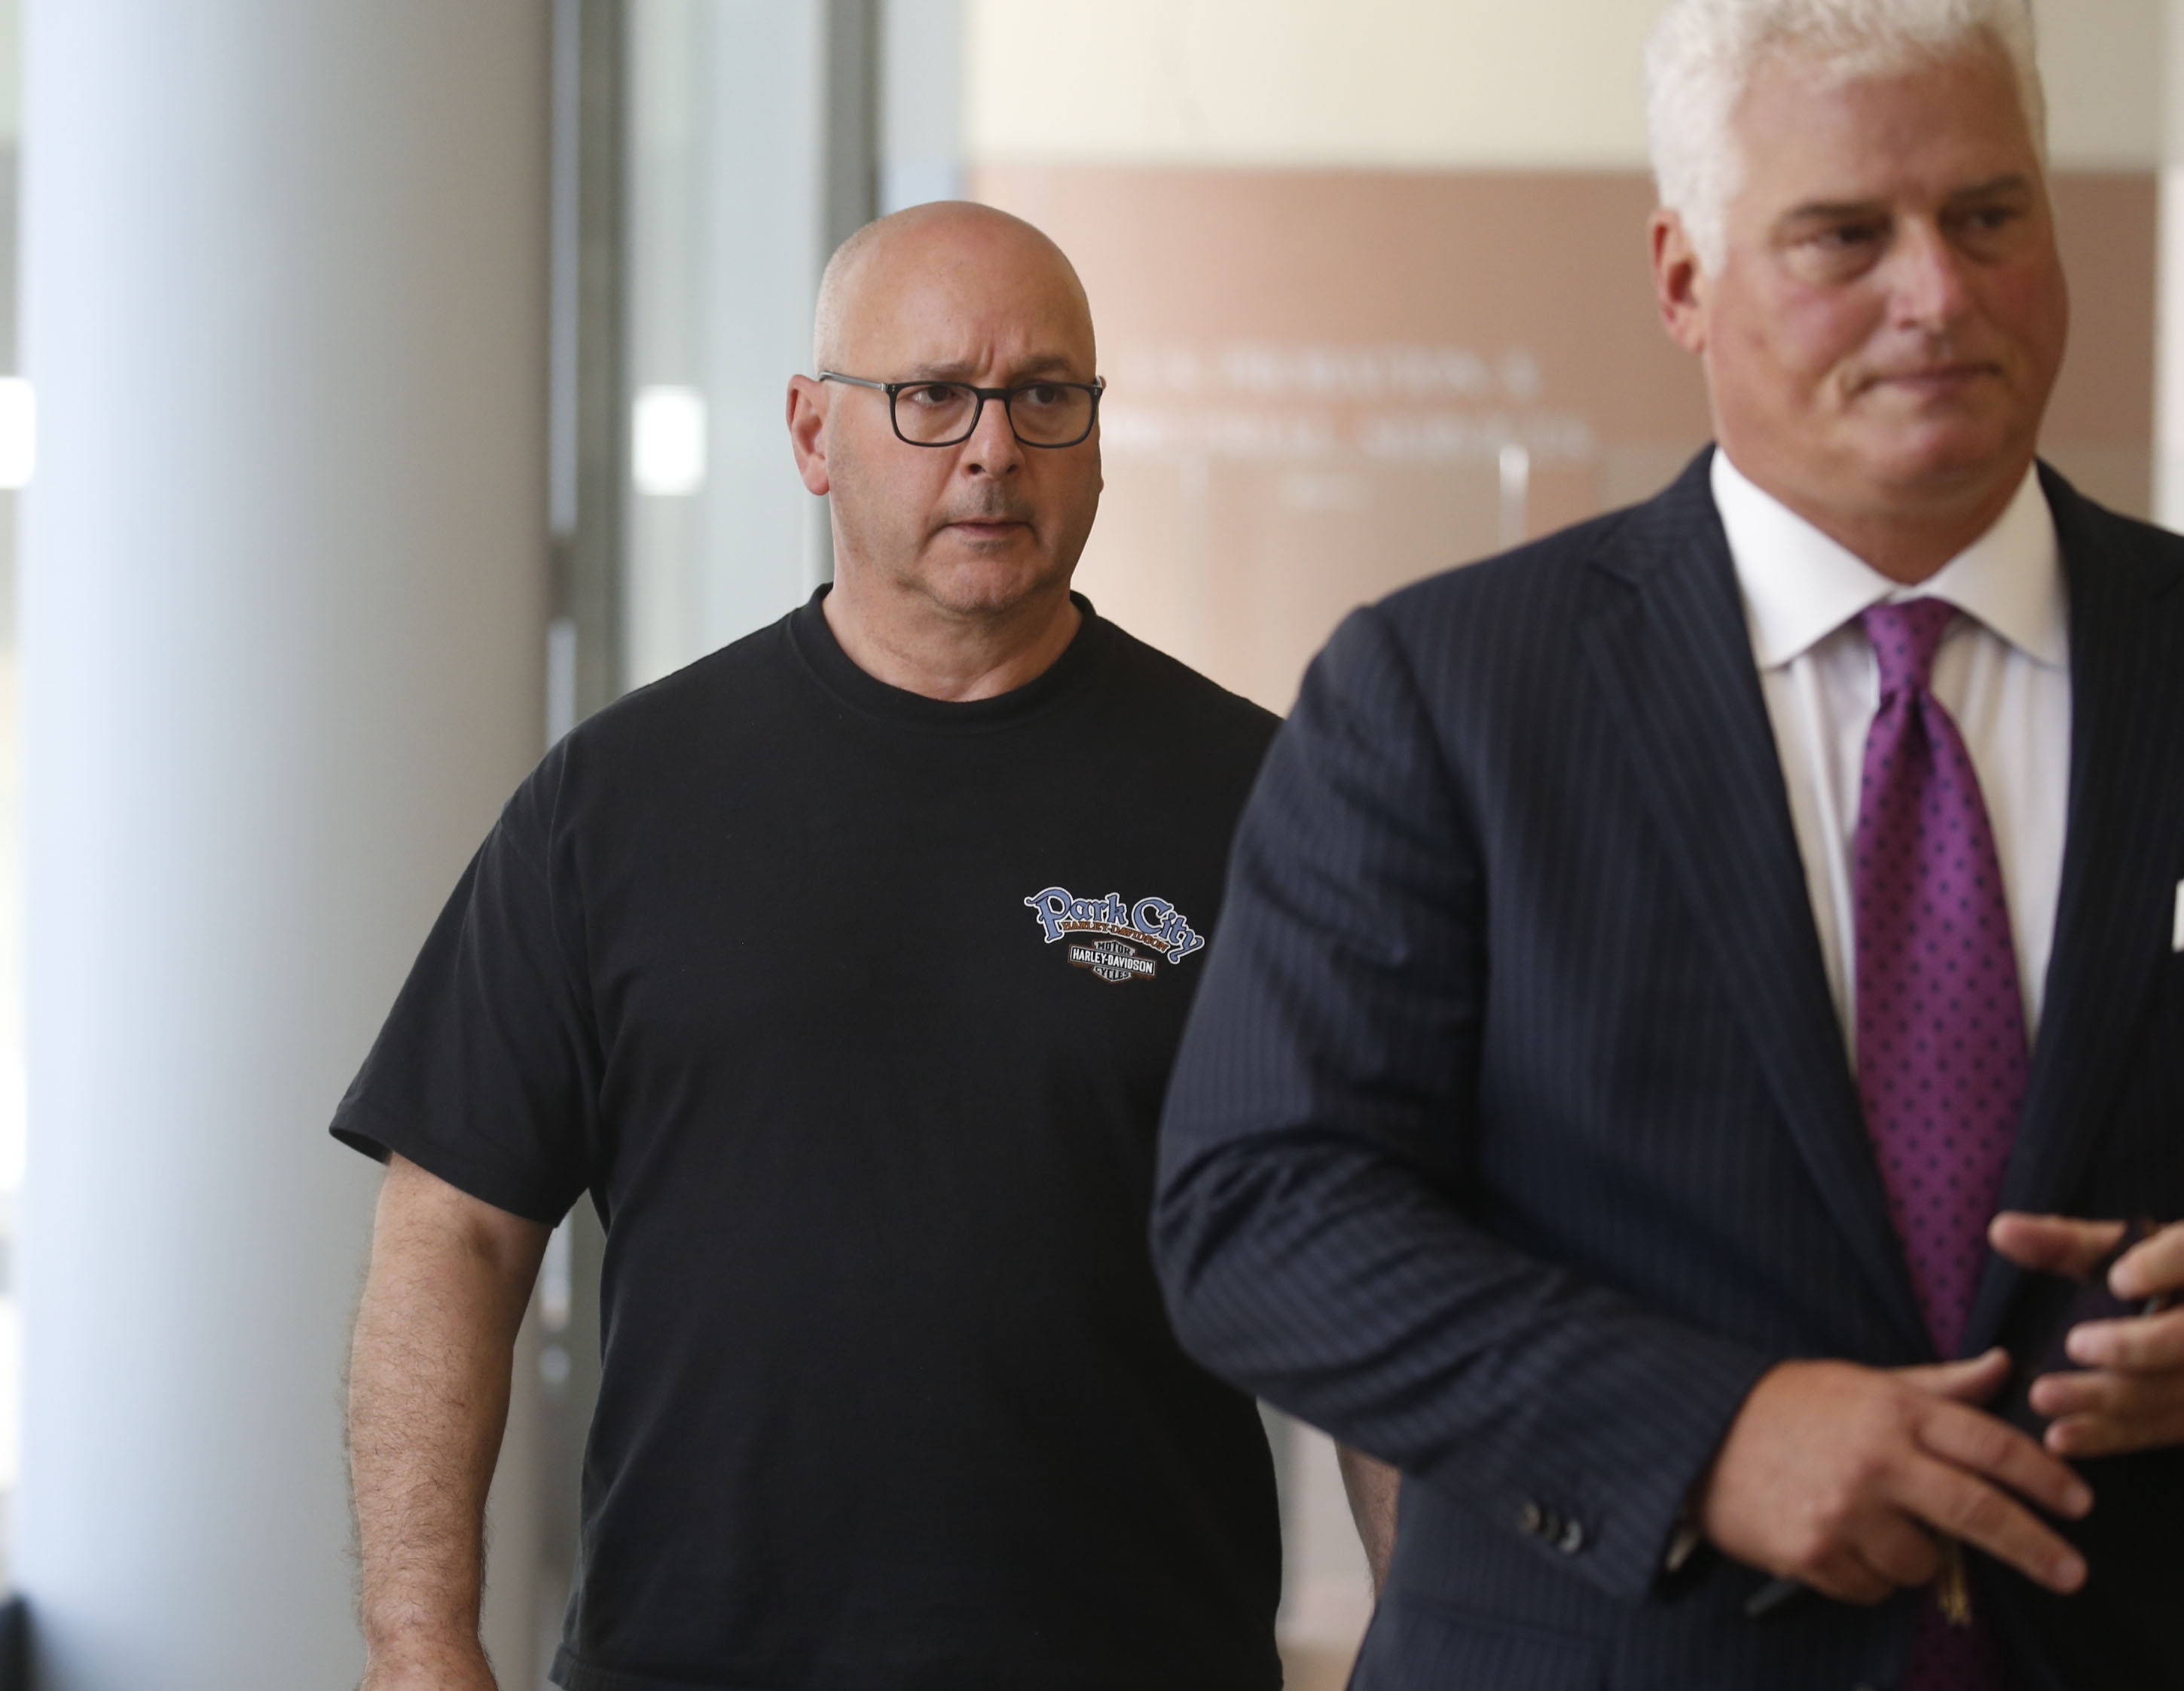 Louis P. Ciminelli, left, gets escorted out of court with his attorney Daniel C. Oliverio, right, after facing charges of  rigging and bribery at Buffalo federal court on Thursday, Sept. 22, 2016.  (Robert Kirkham/Buffalo News)